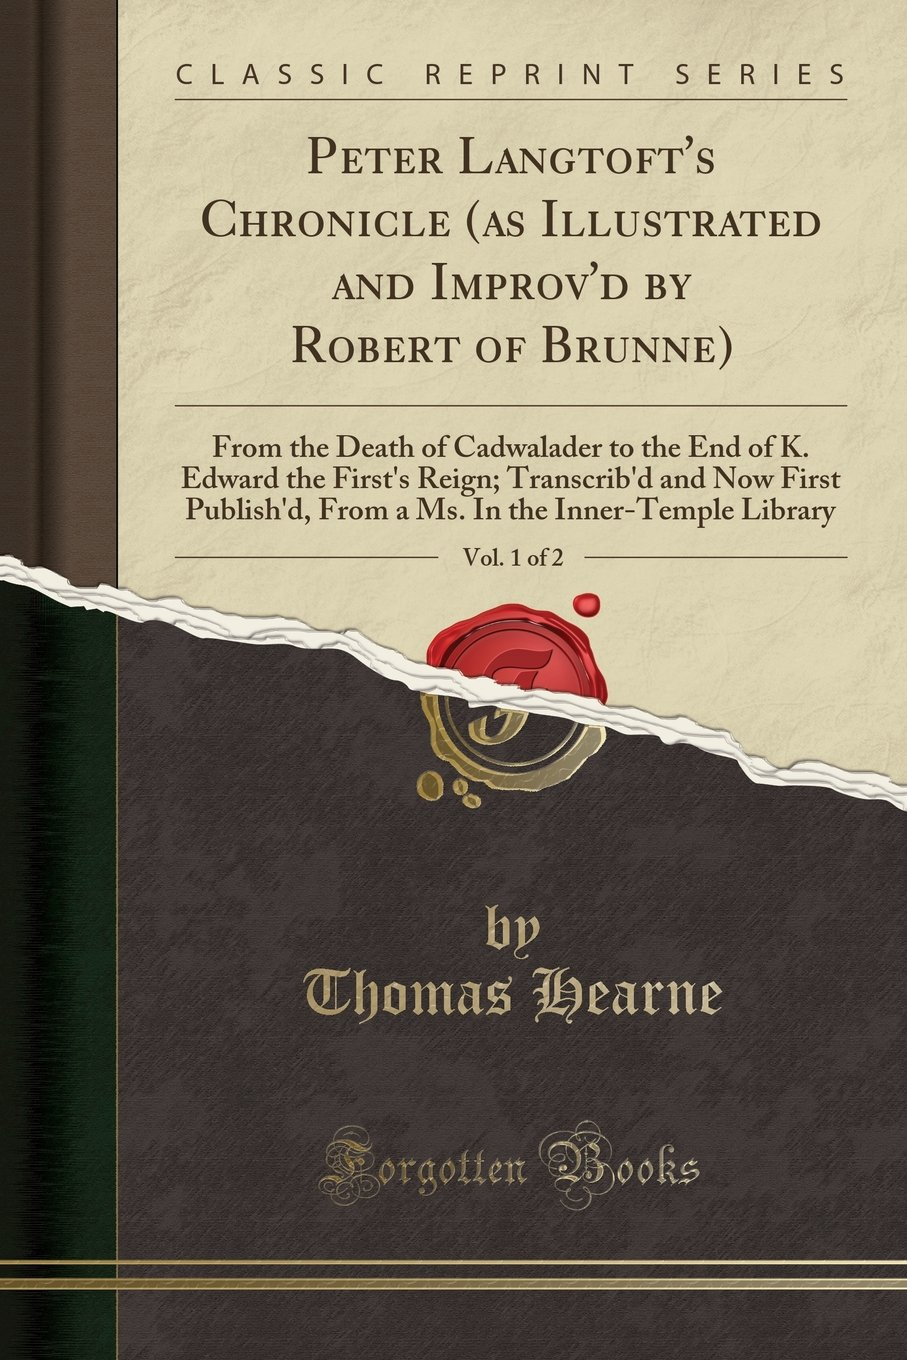 Read Online Peter Langtoft's Chronicle (as Illustrated and Improv'd by Robert of Brunne), Vol. 1 of 2: From the Death of Cadwalader to the End of K. Edward the ... From a Ms. In the Inner-Temple Library ebook